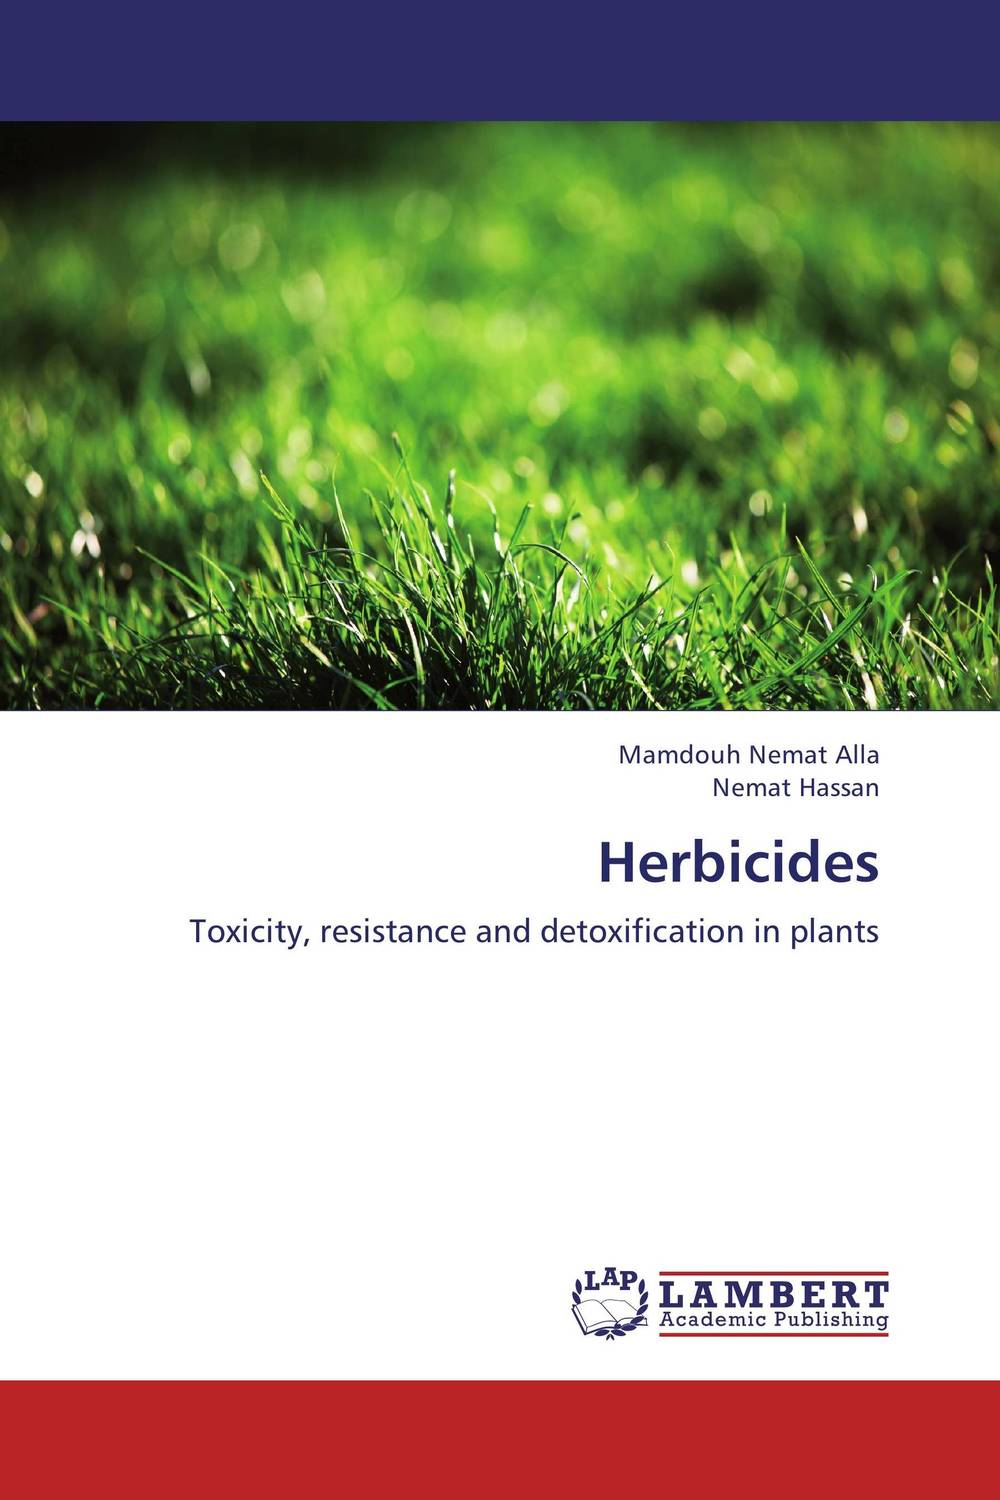 Herbicides fatal misconception – the struggle to control world population